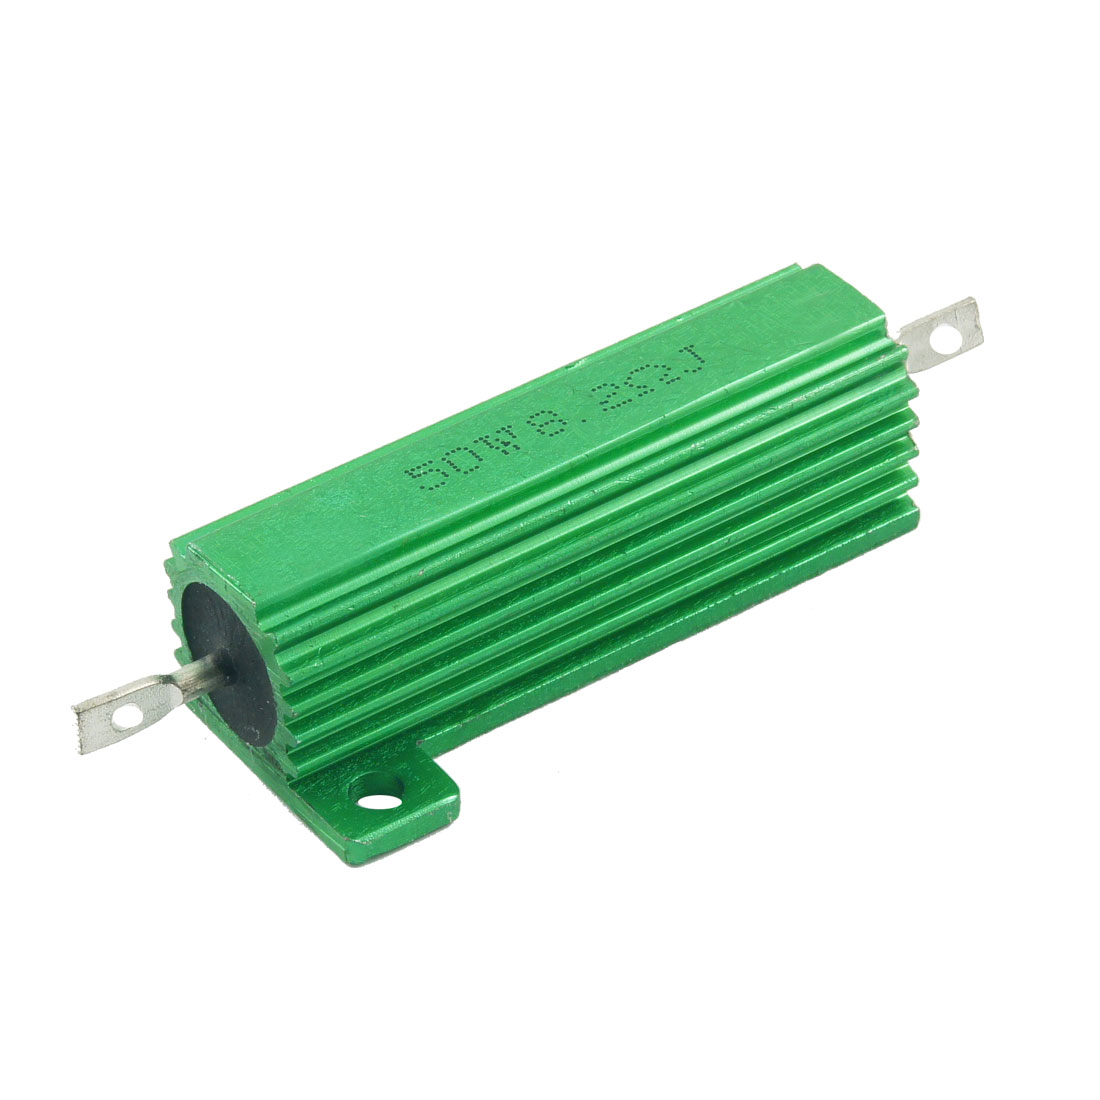 50 Watt 8.2 Ohm 5% Green Aluminum Shell Wire Wound Resistor